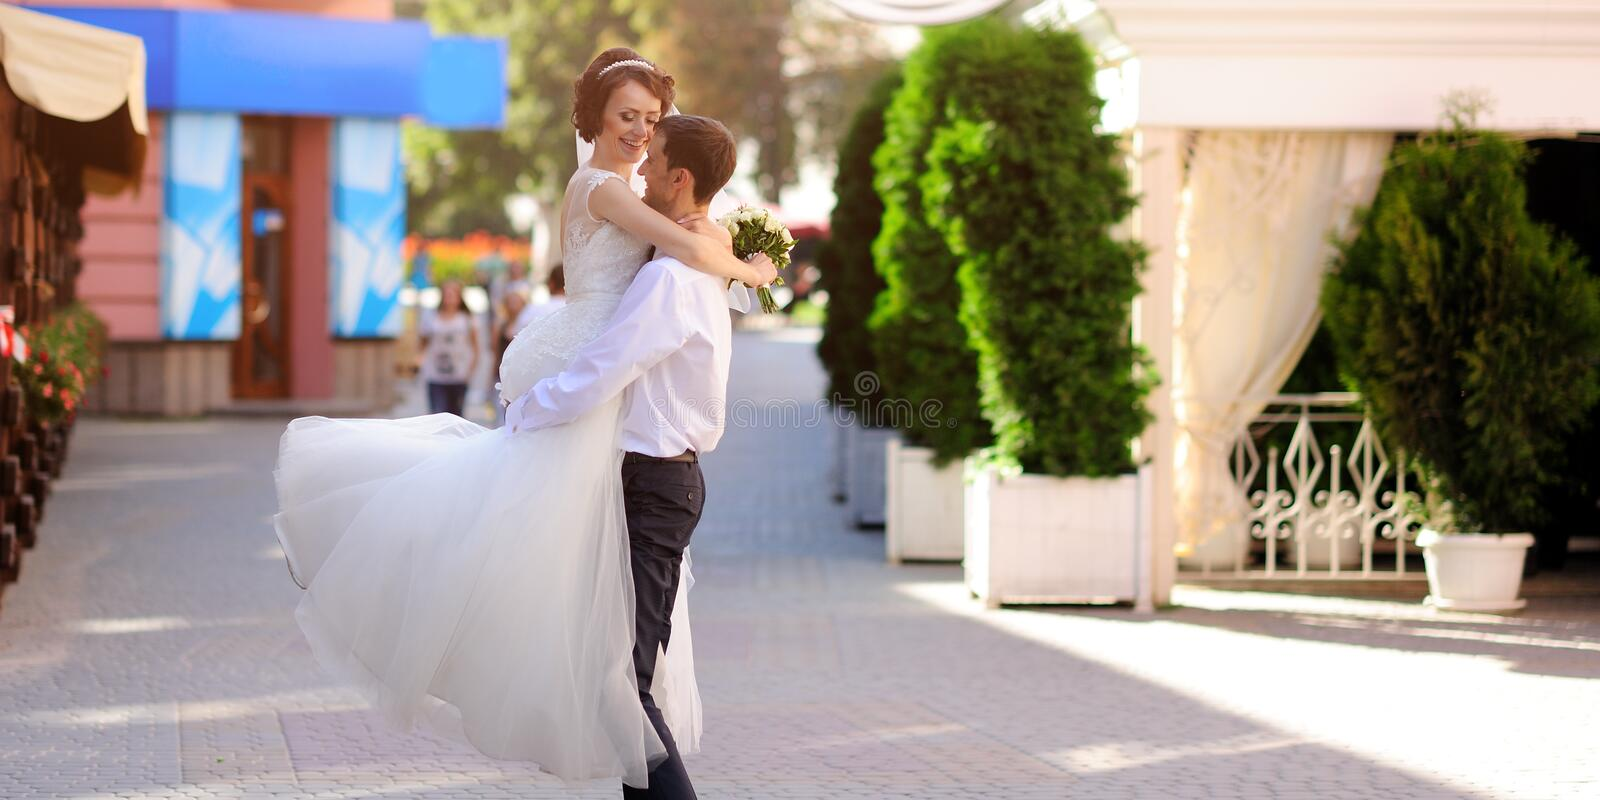 Happy bride and groom on their wedding day royalty free stock image